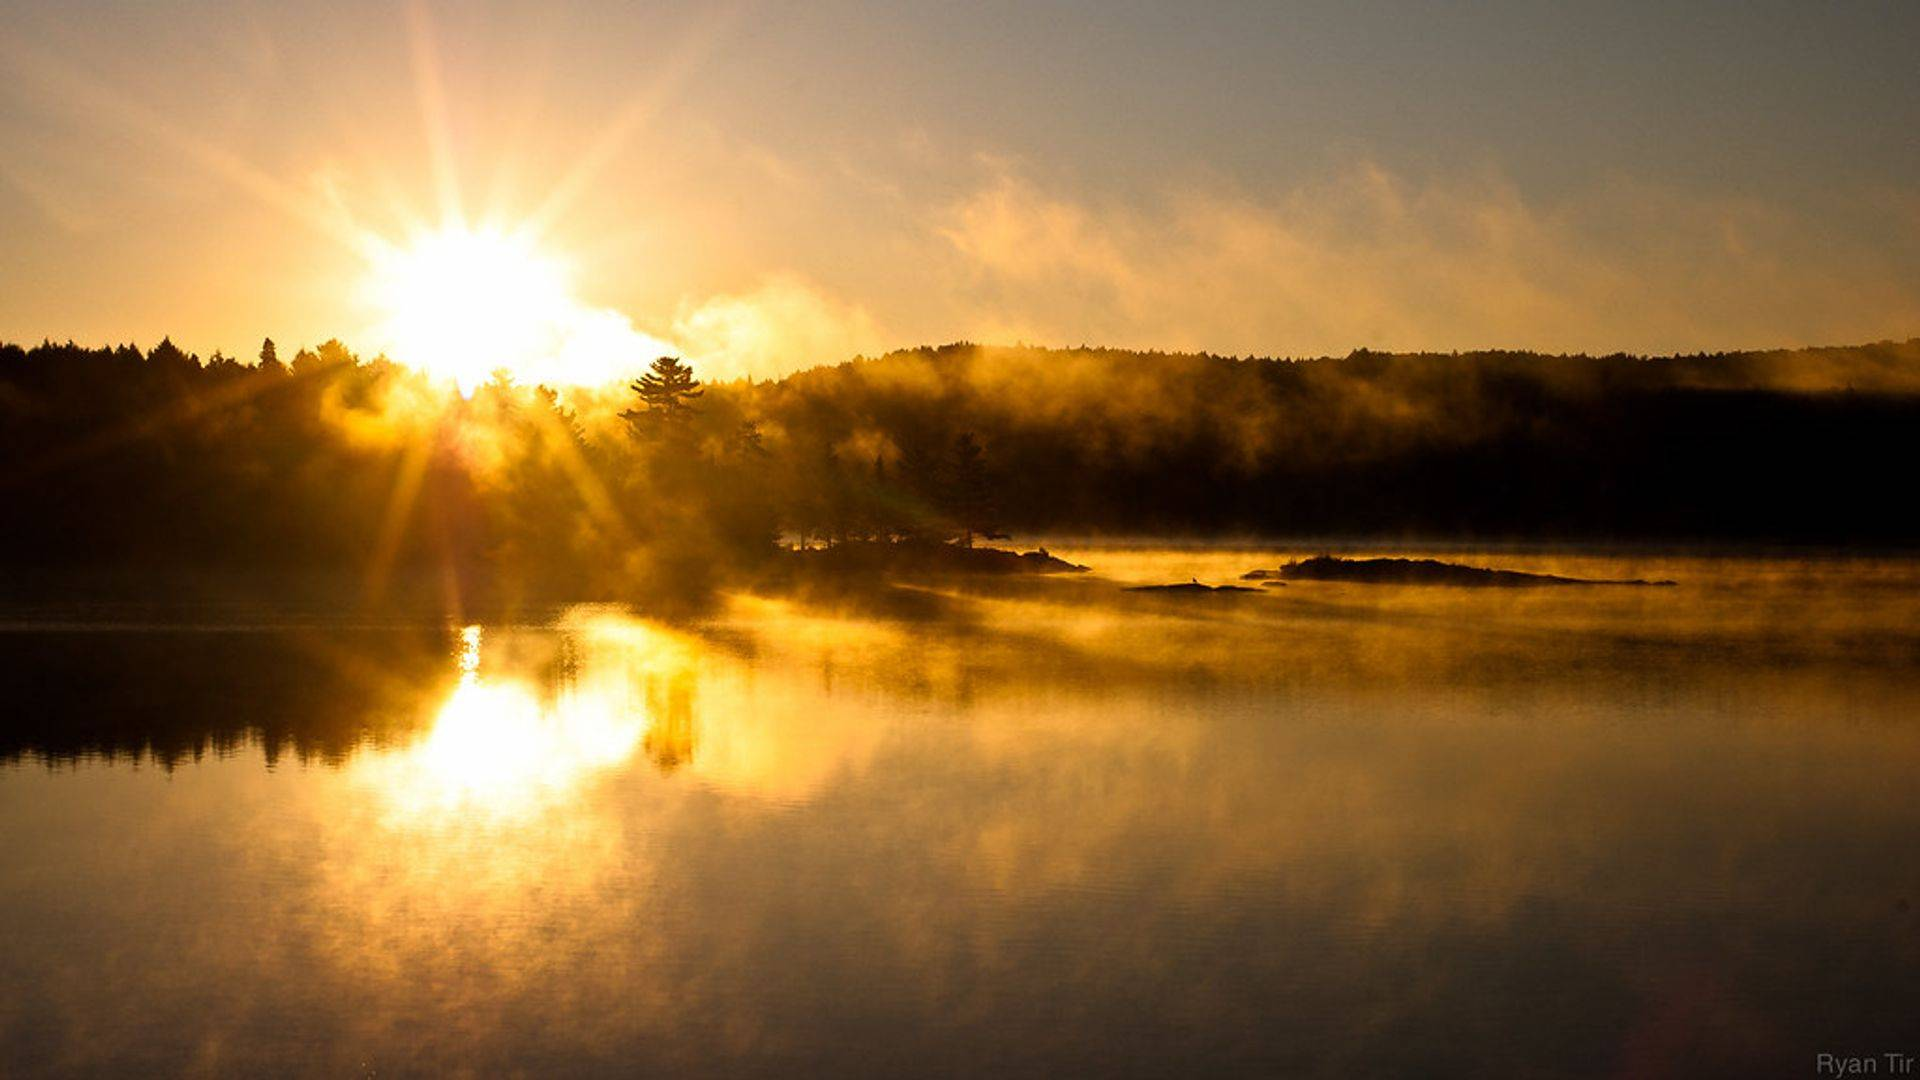 THE SUN IS OUR ENERGY IT AWAKENS US EACH MORNING COMING UP IN THE EAST AND WE REST AS IT GOES DONE IN THE WEST